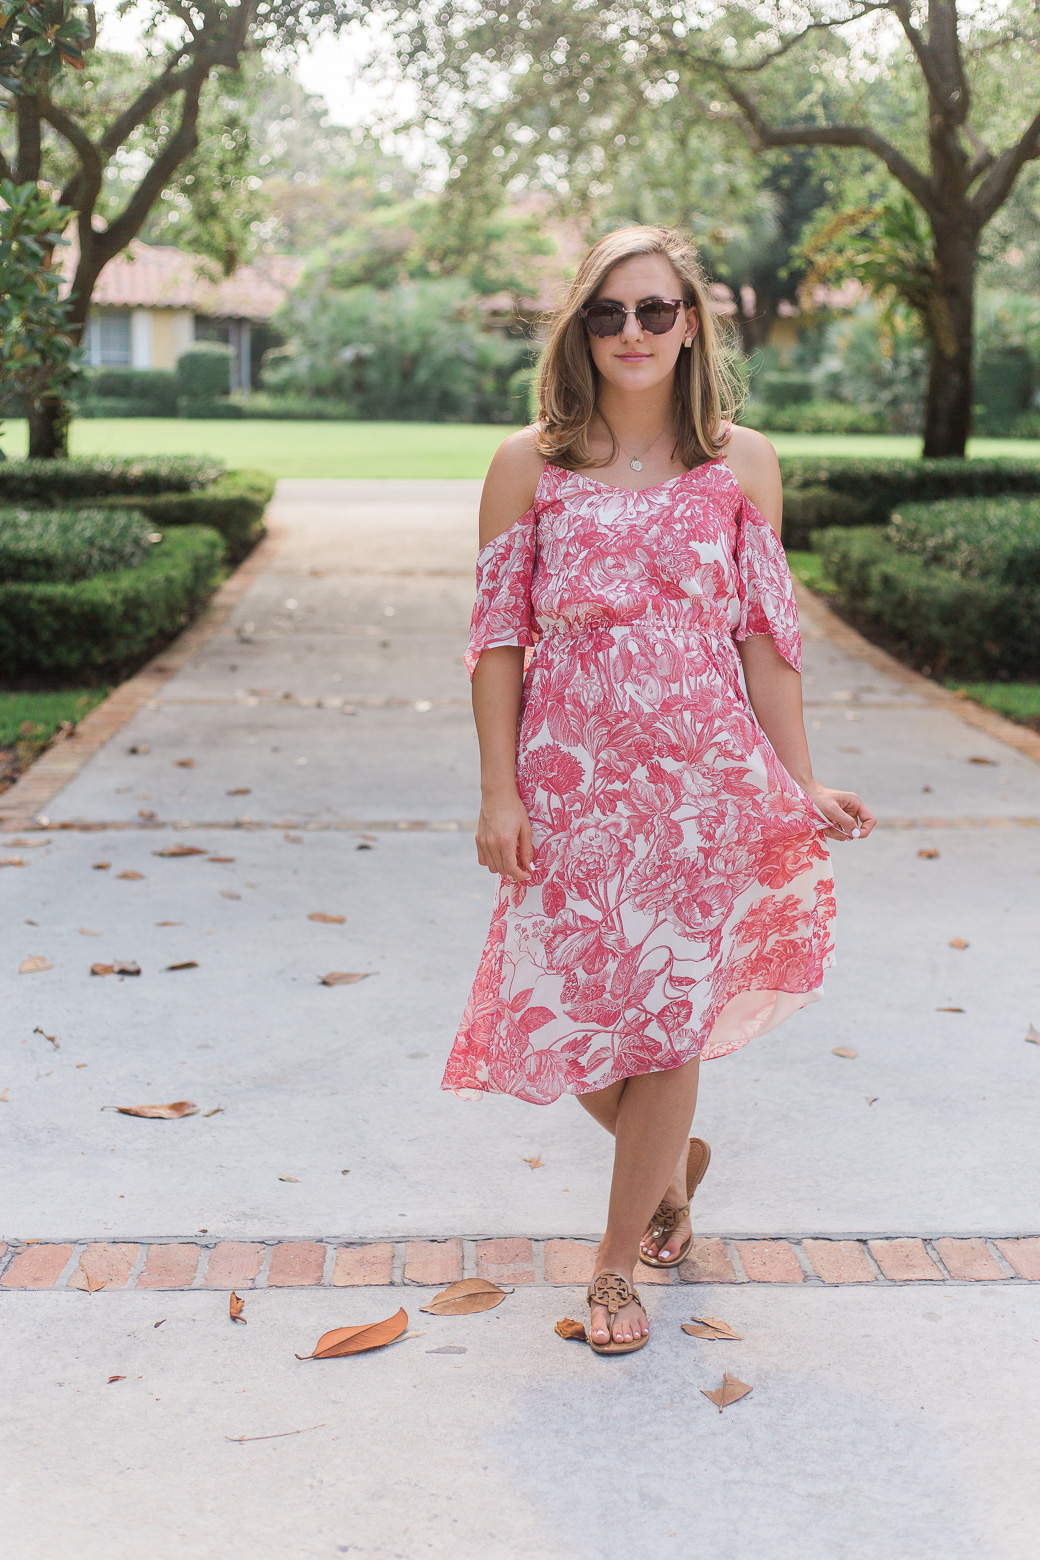 My Favorite Part about Traveling #sallyjetsets, a rose dress on sweetlysally.com